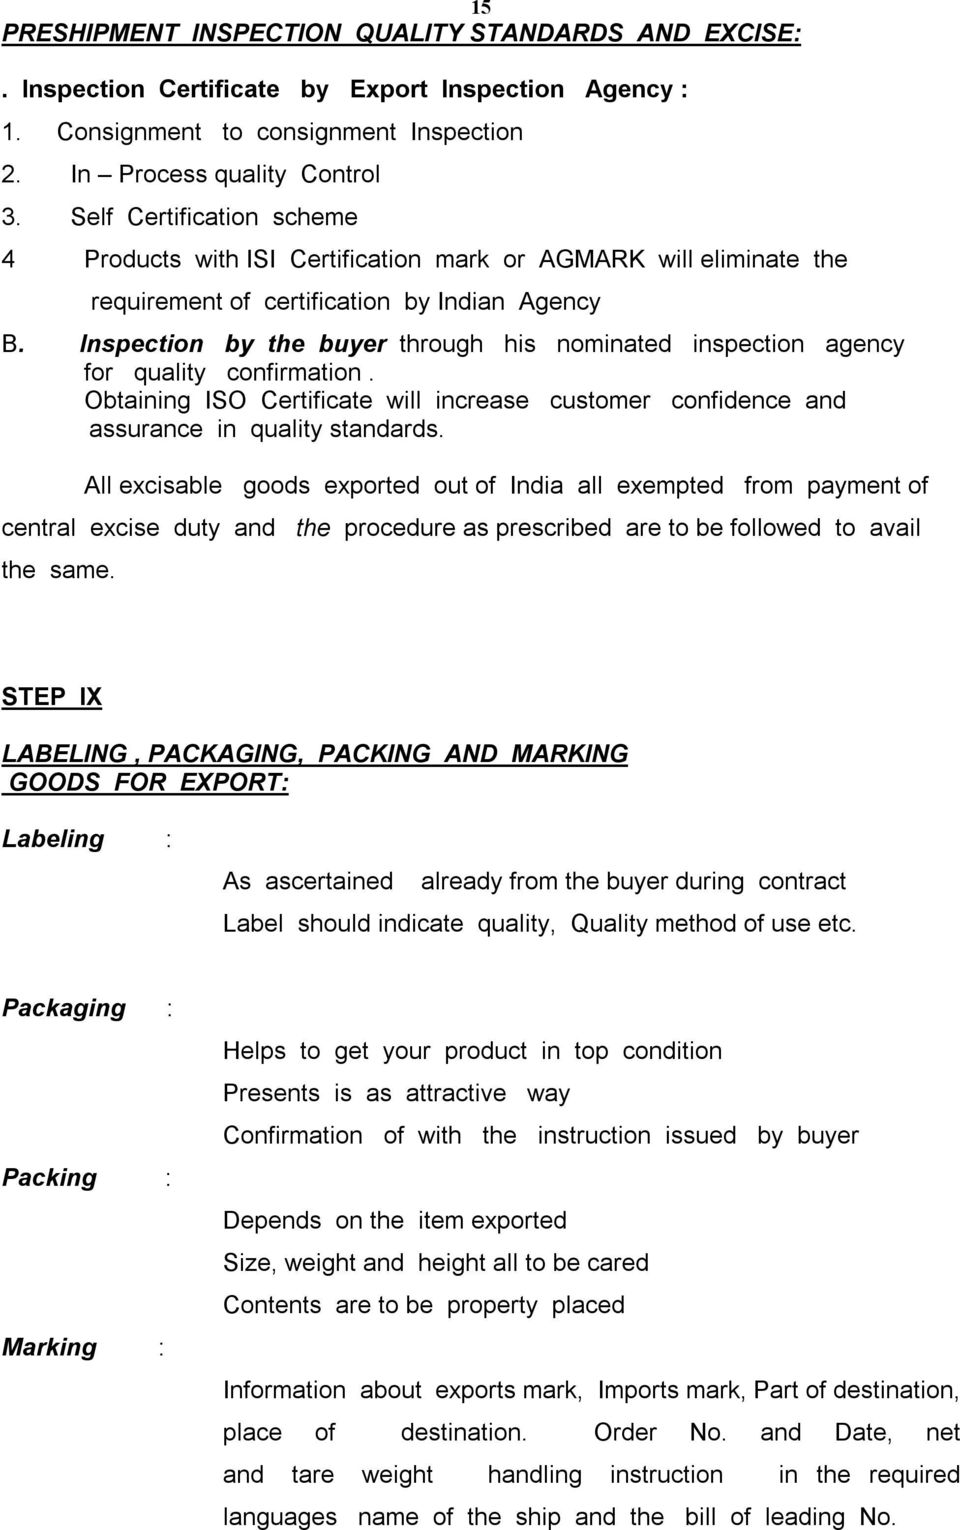 Labelling Requirements For Exported Goods